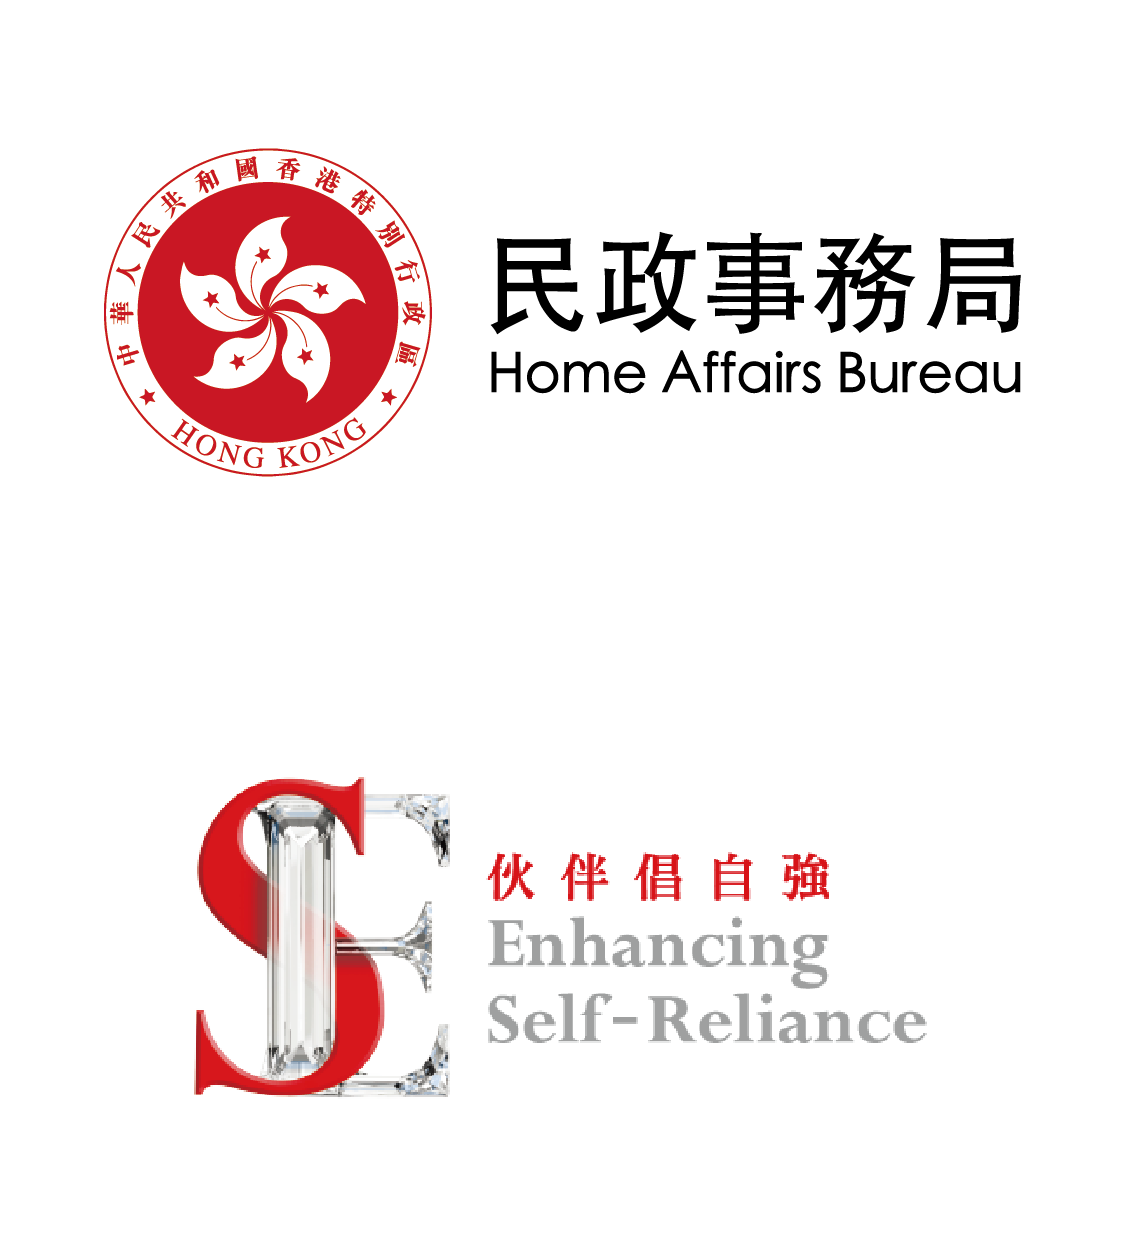 Home Affairs Bureau & Enhancing Self-Reliance